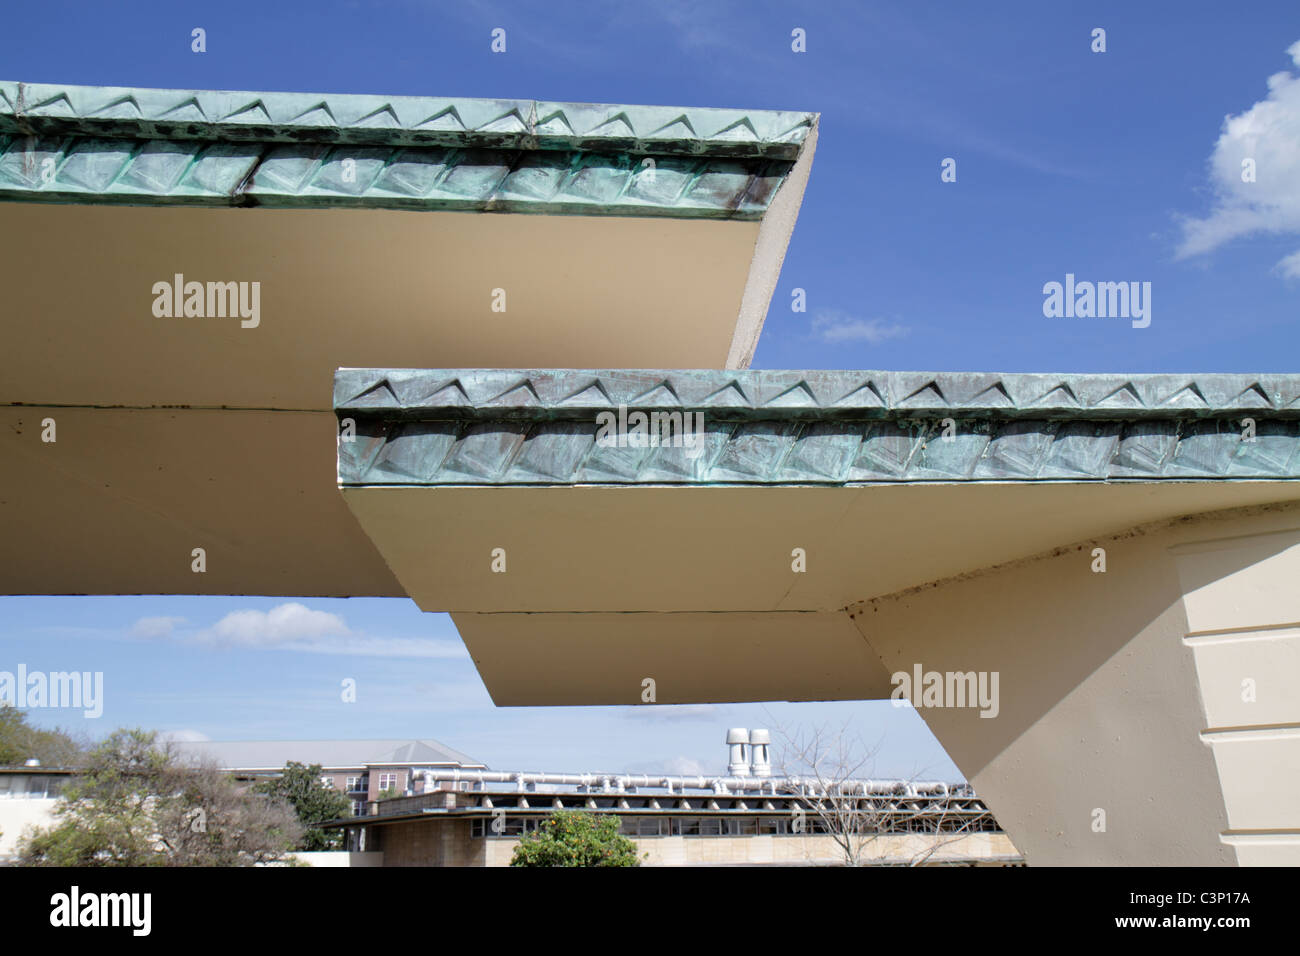 Lakeland Florida Florida Southern College Frank Lloyd Wright Architect  Architecture Design National Register Of Historic Places